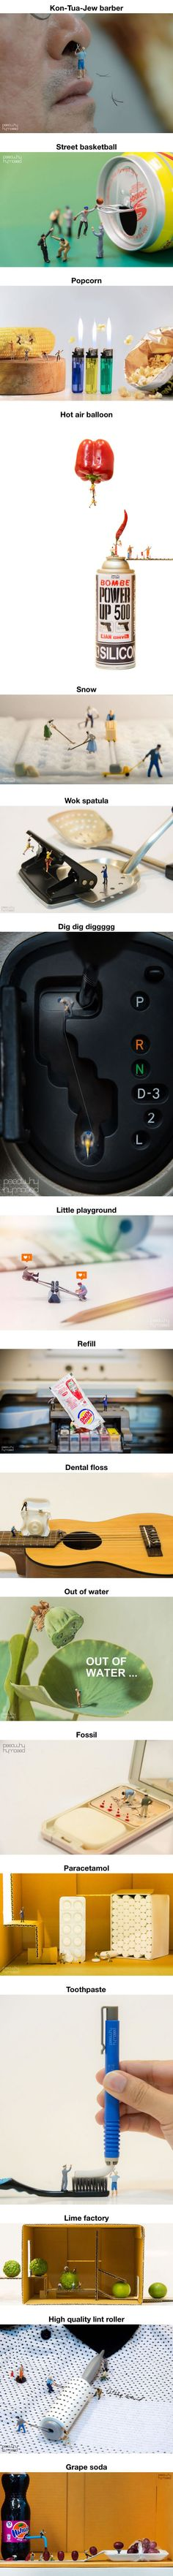 Artist Captures Miniature People Dealing With Everyday Life Objects (By PeeOwhY) Check more at http://www.gagalaxy.com/artist-captures-miniature-people-dealing-with-everyday-life-objects-by-peeowhy/